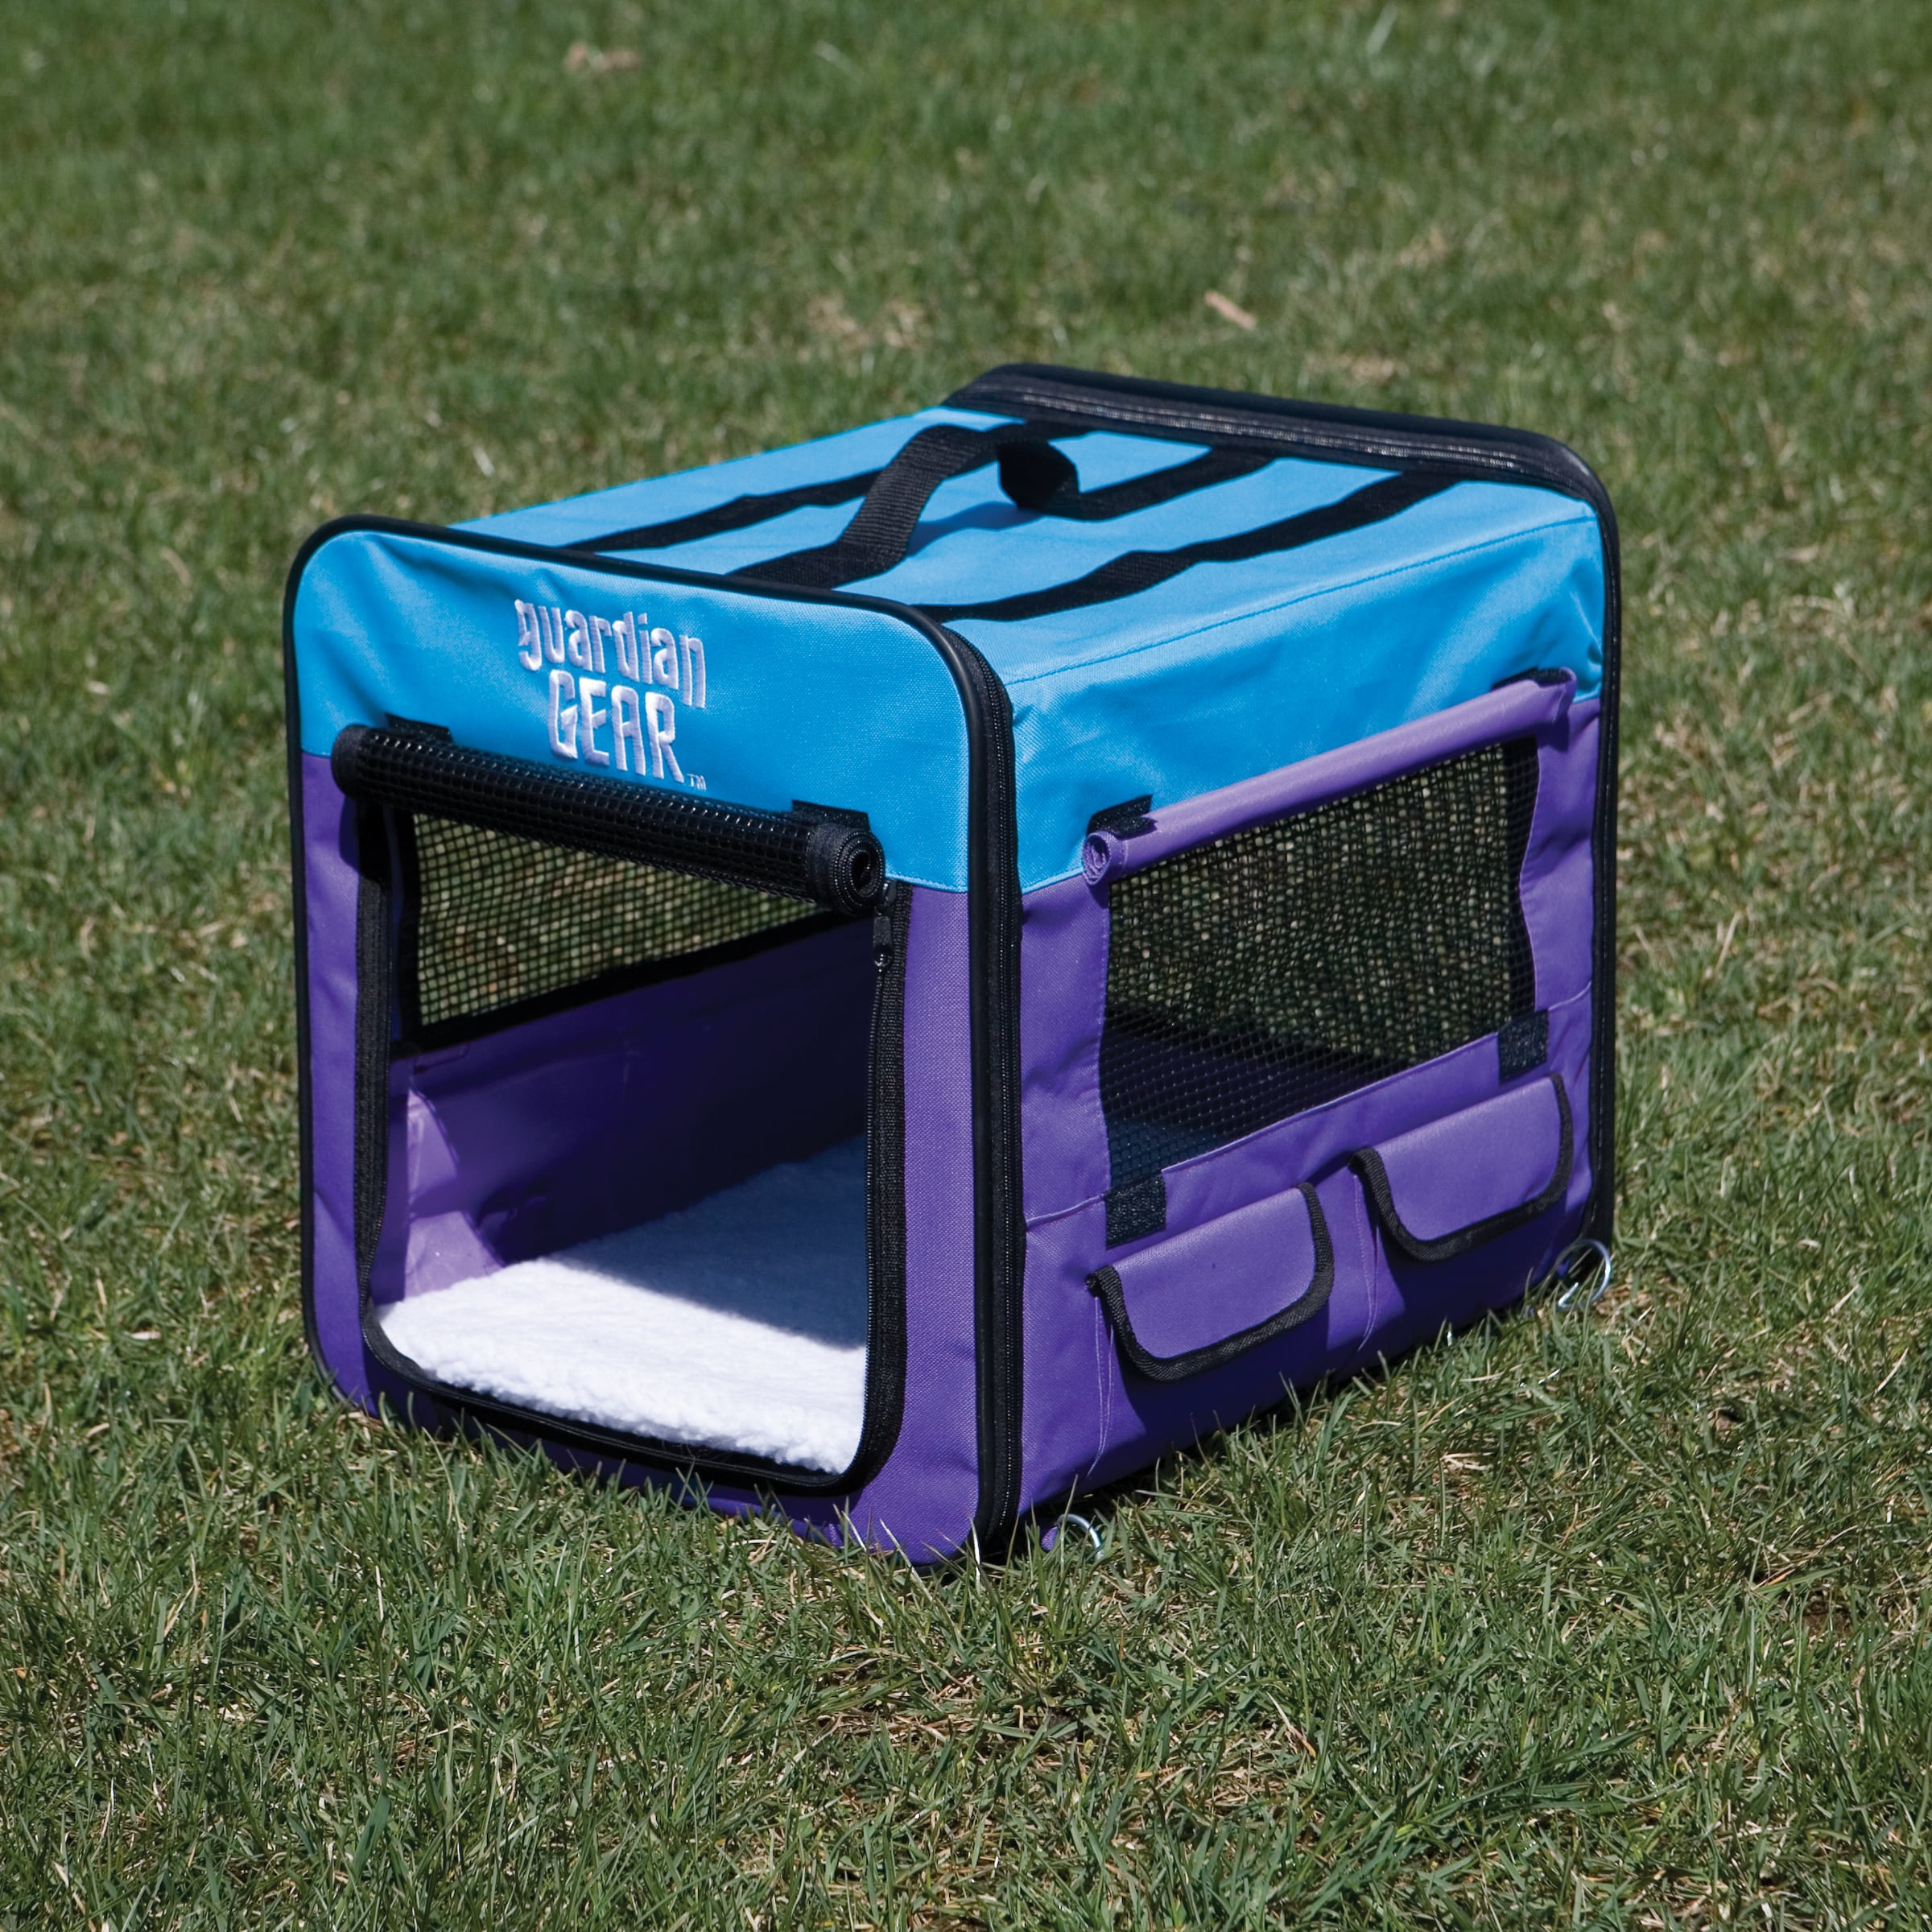 Guardian Gear Purple/ Turquoise Extra-small Collapsible D...